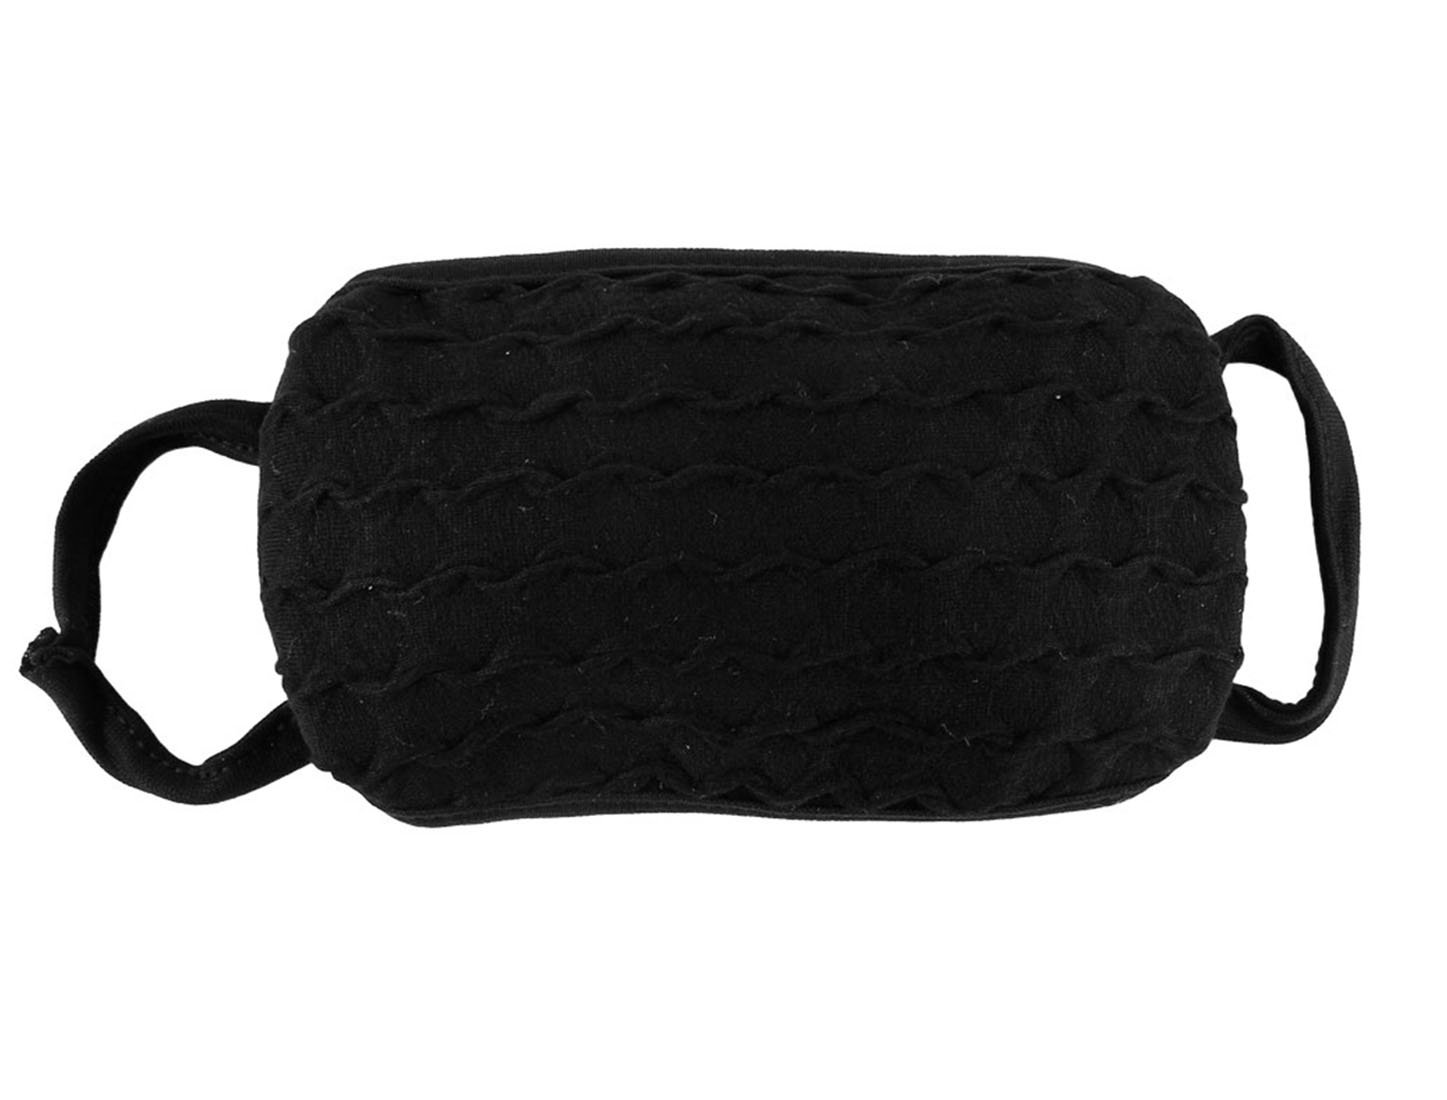 Unisex Black Winter Outdoor Dust Proof Stretchy Ear Strap Earloop Face Mask